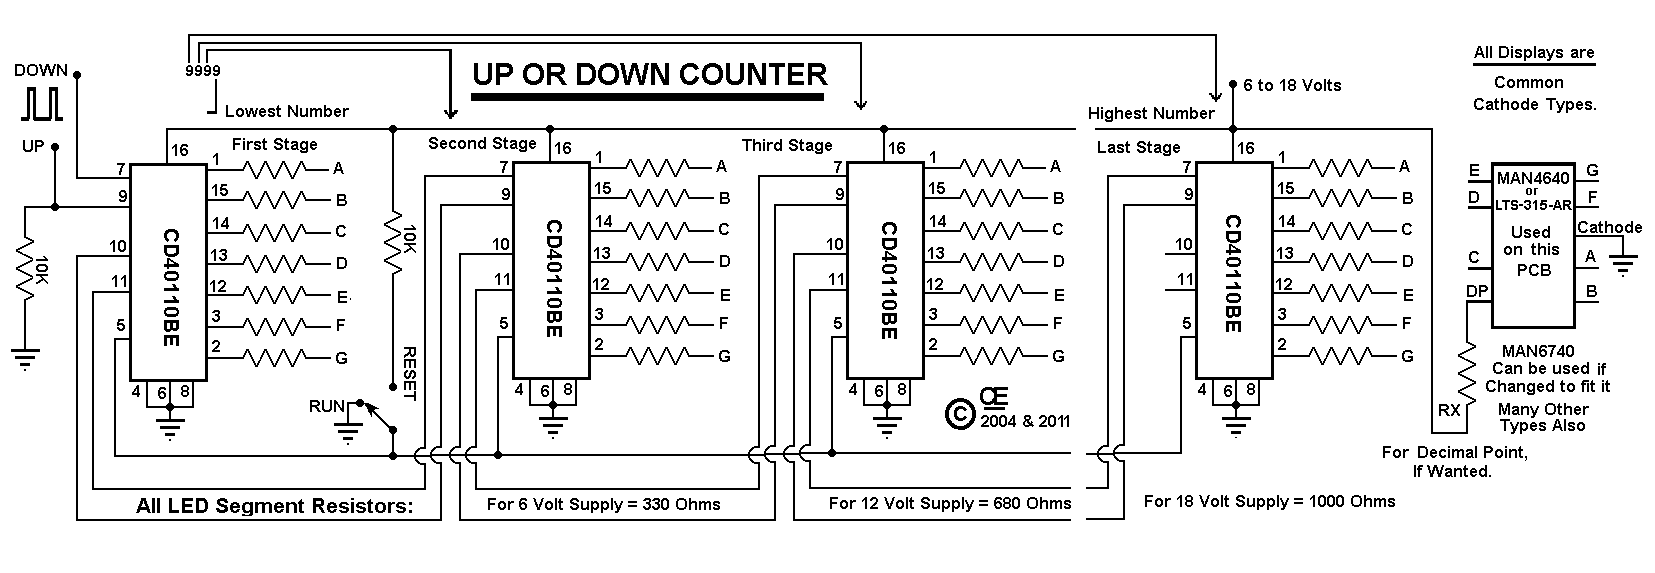 Counter Circuit Cd40110be Web About Wiring Diagram 7 Segment A Digital Up Down Rh Chemelec Com Display Schematic